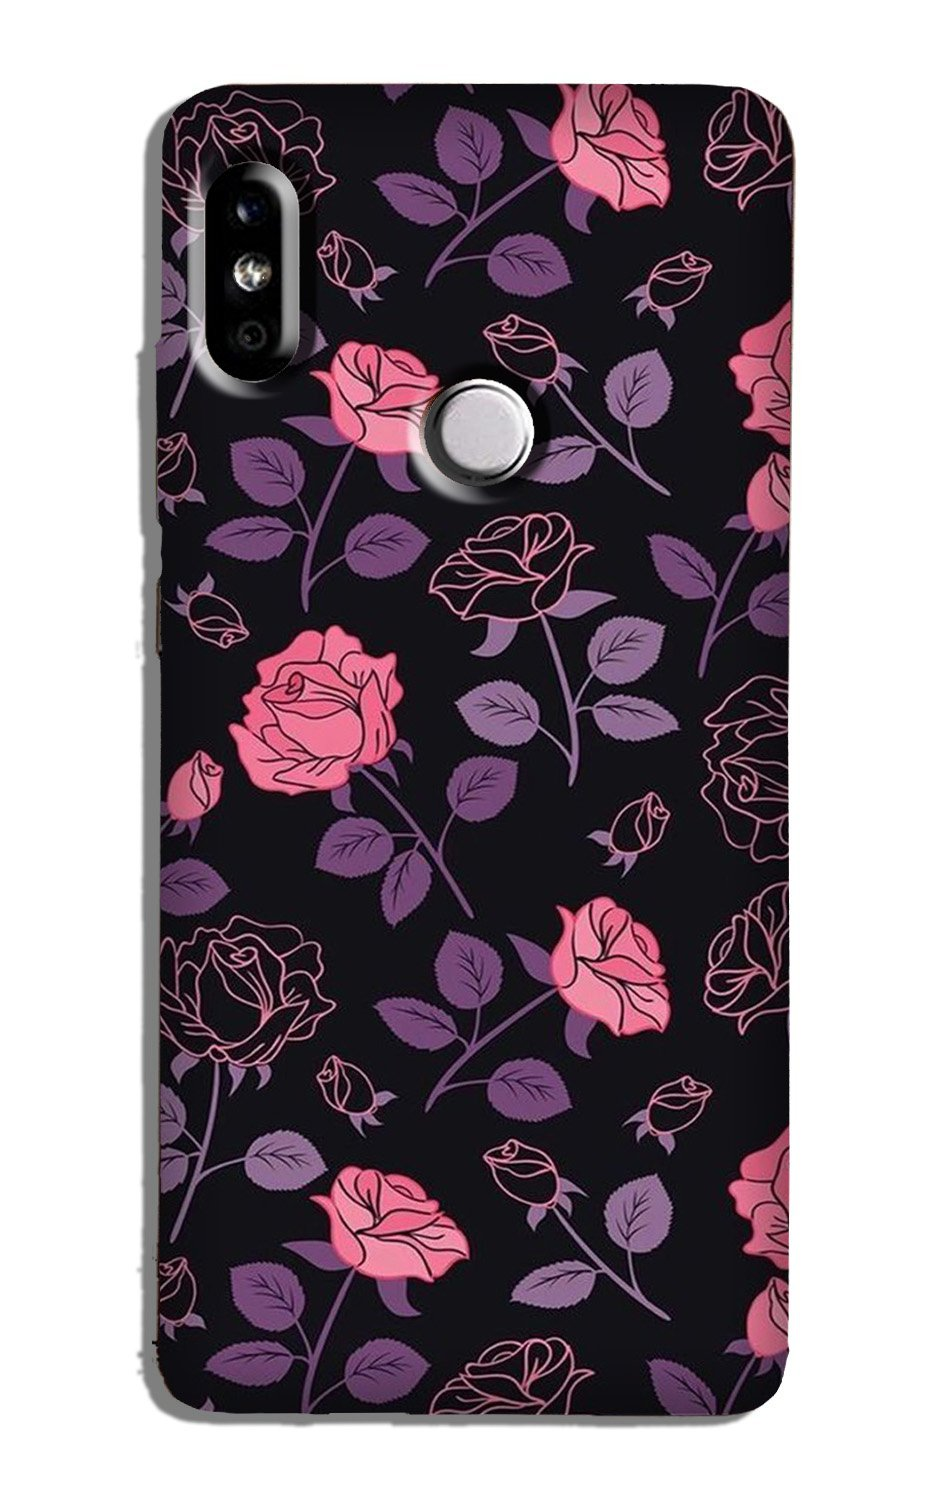 Rose Black Background Case for Redmi Note 5 Pro